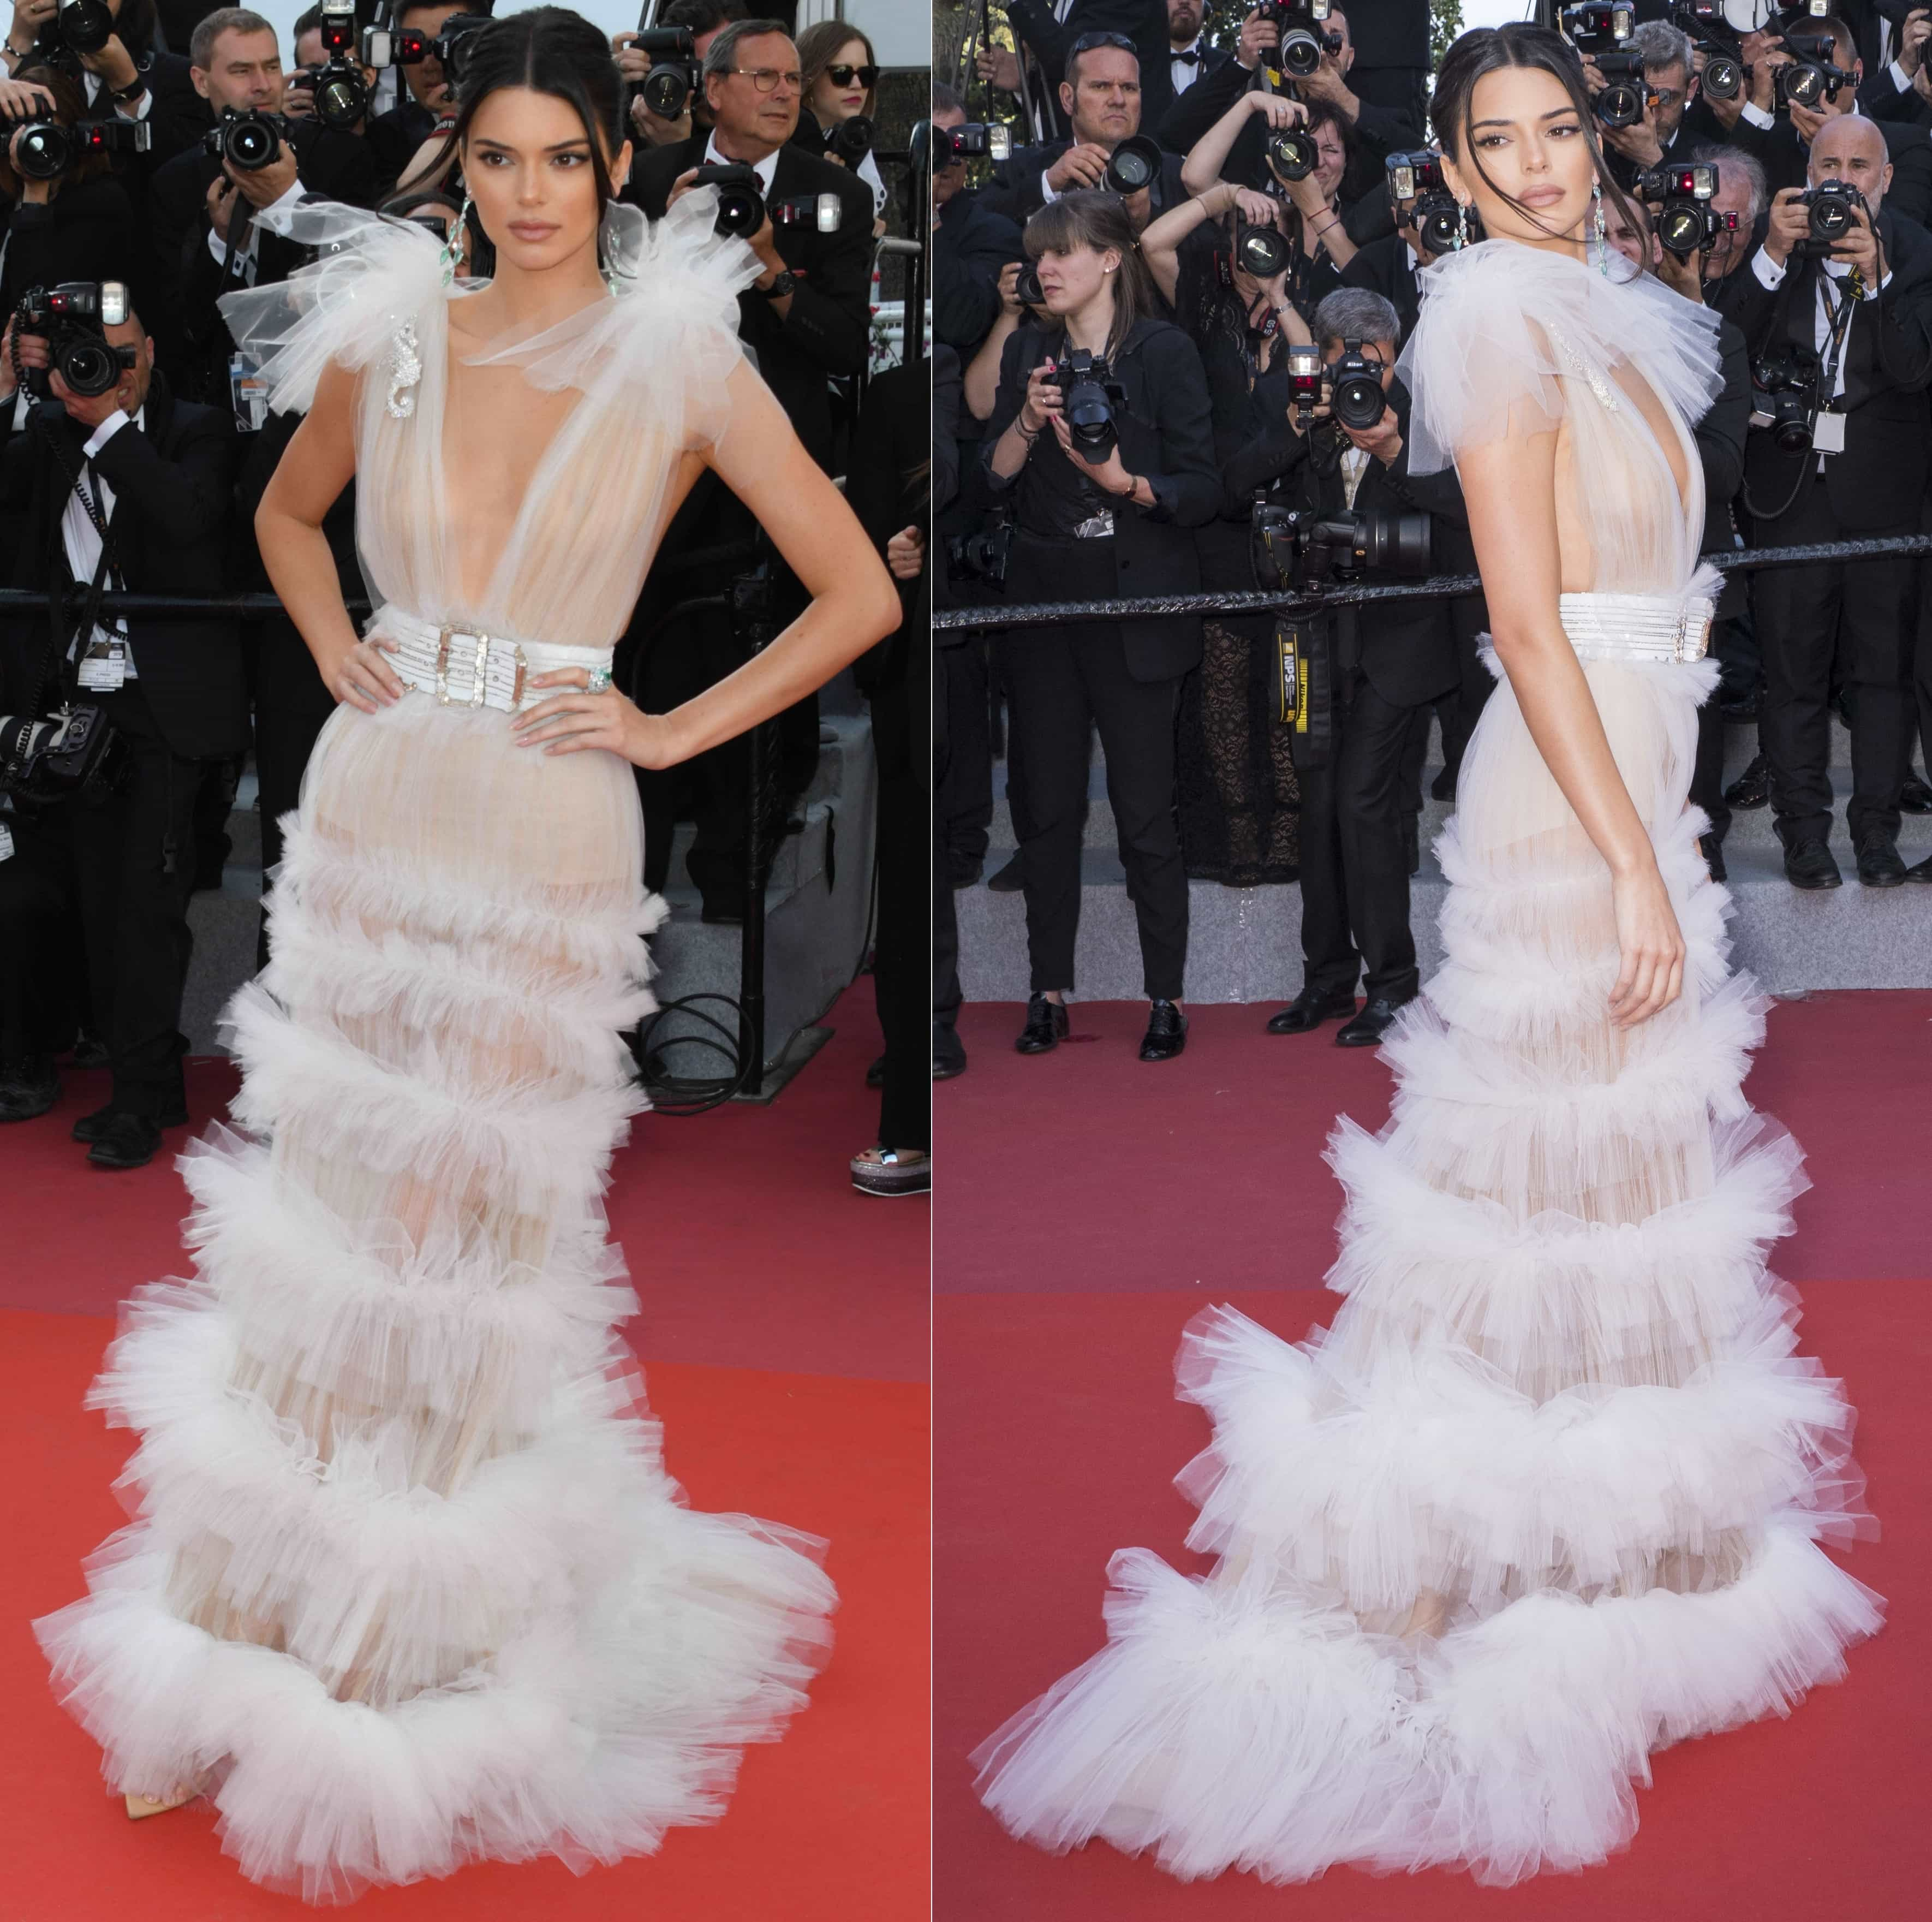 Kendall Jenner ina swan-like dress from Schiaparelli's Fall/Winter 2017-2018 Couture collection